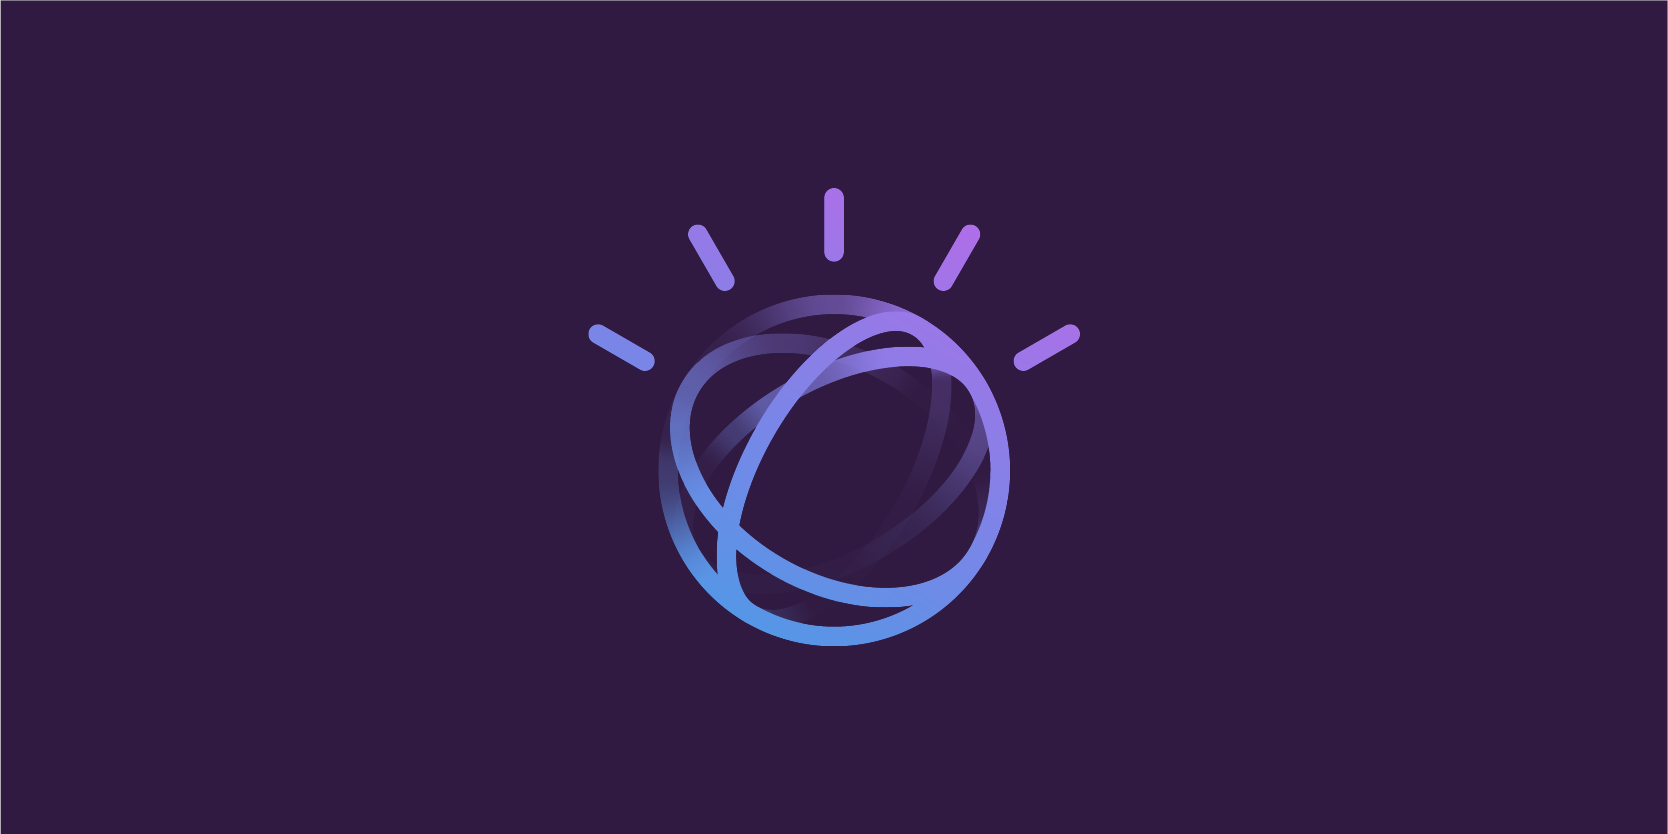 Watson compare comply helping enterprises manage contracts and watson compare comply helping enterprises manage contracts and risk more effectively watson gumiabroncs Images